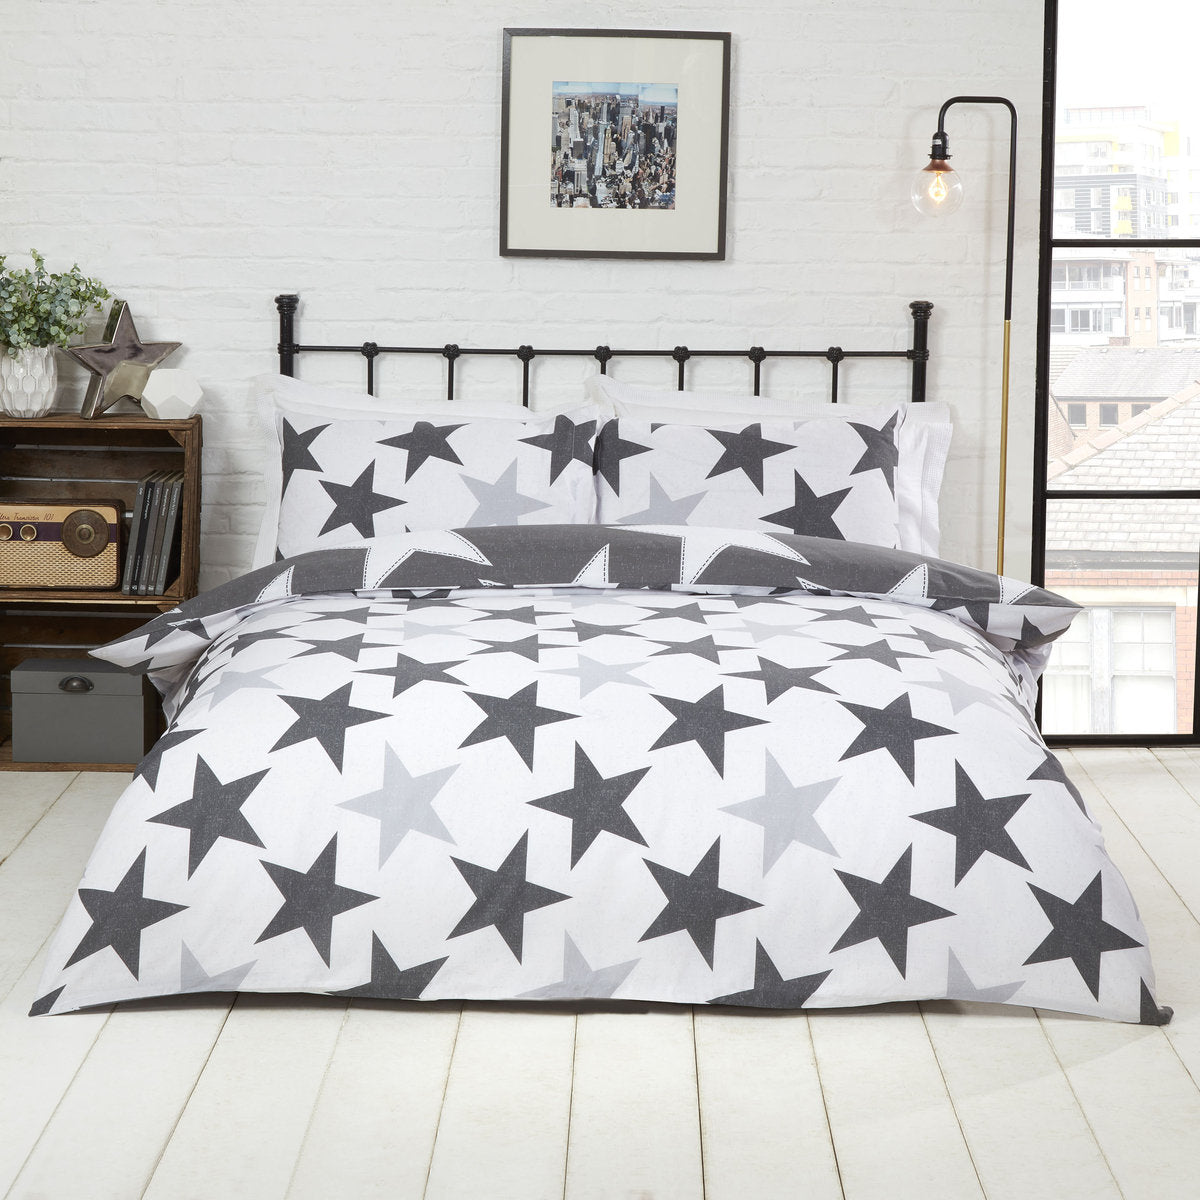 ALL STARS GREY DOUBLE + 2 PILLOWCASES